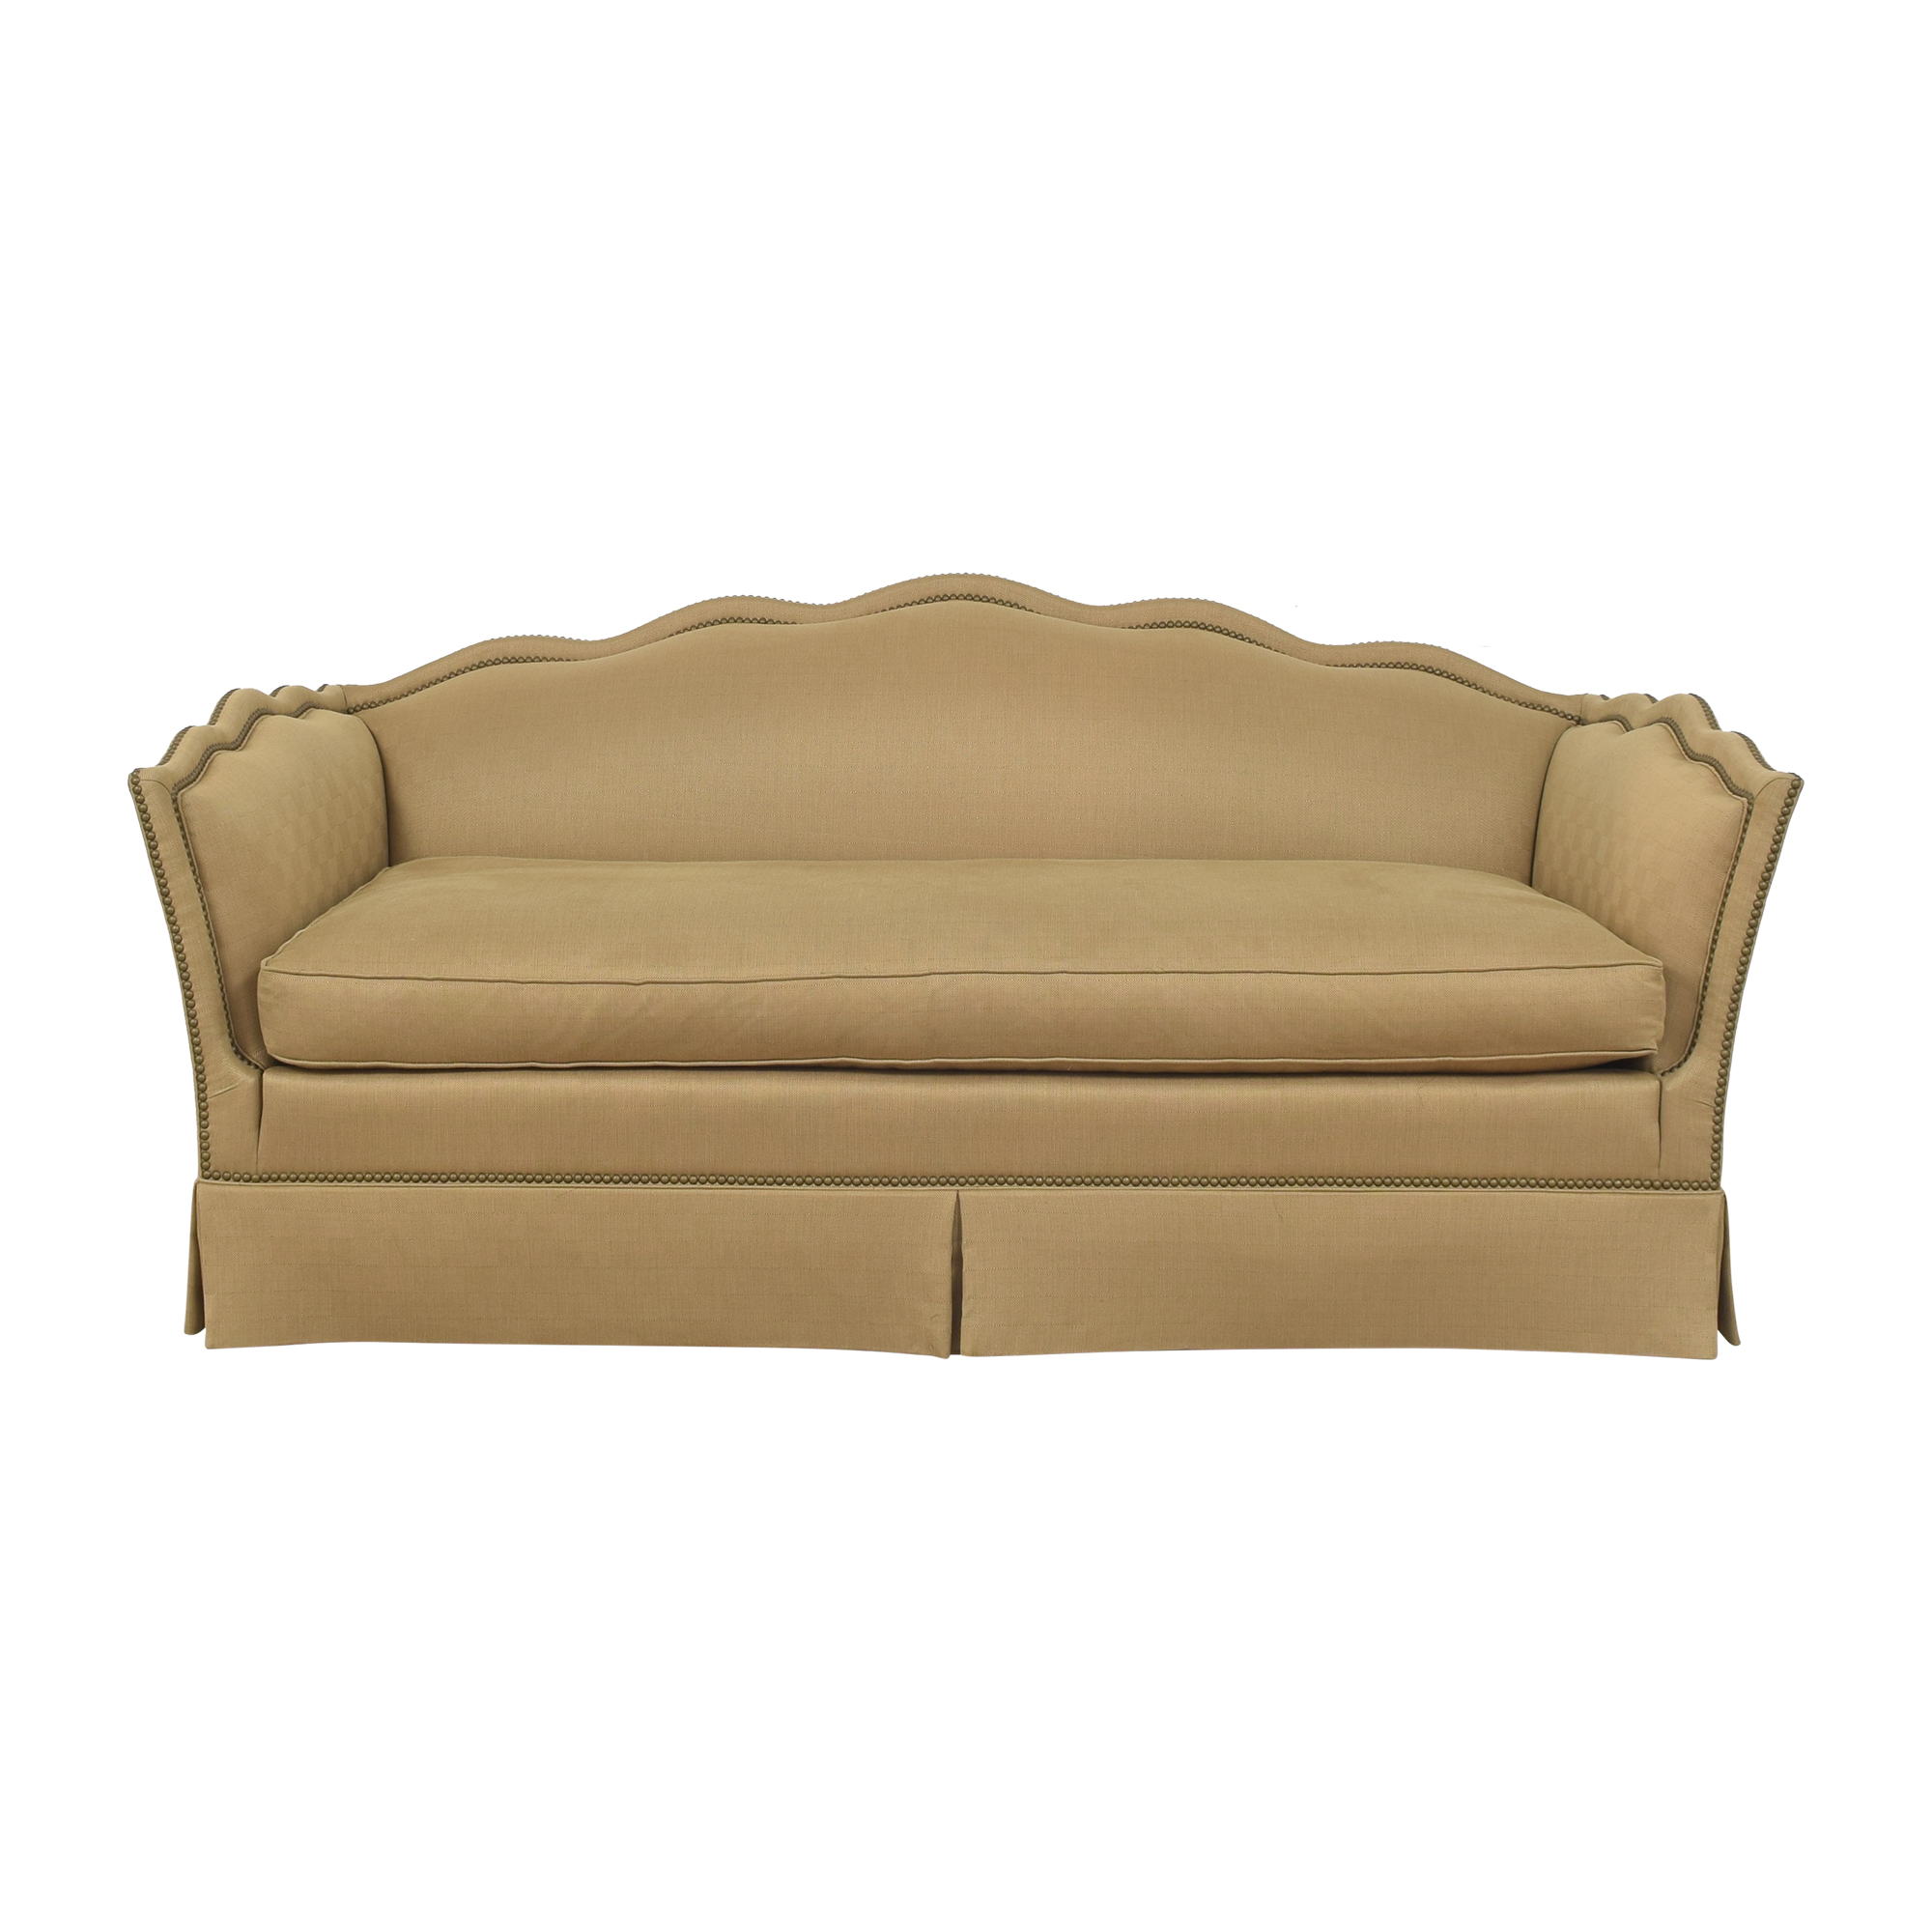 buy Beacon Hill Collection Beacon Hill Collection Nailhead Trim Sofa online